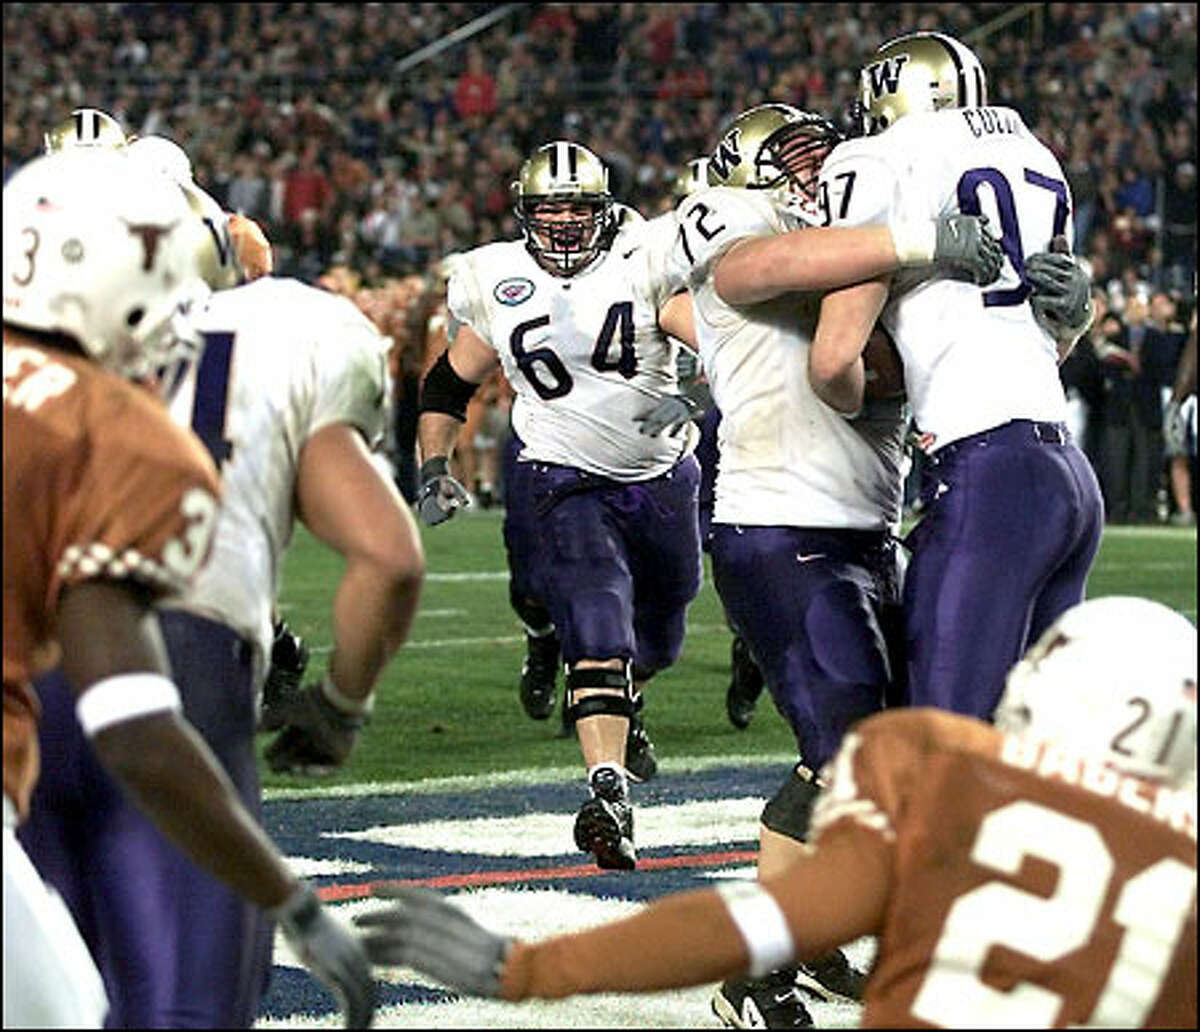 Senior tight end Joe Collier gets a bear hug from tackle Todd Bachert after scoring on a 4-yard pass from Cody Pickett to give the Huskies a 20-14 lead in the second quarter.